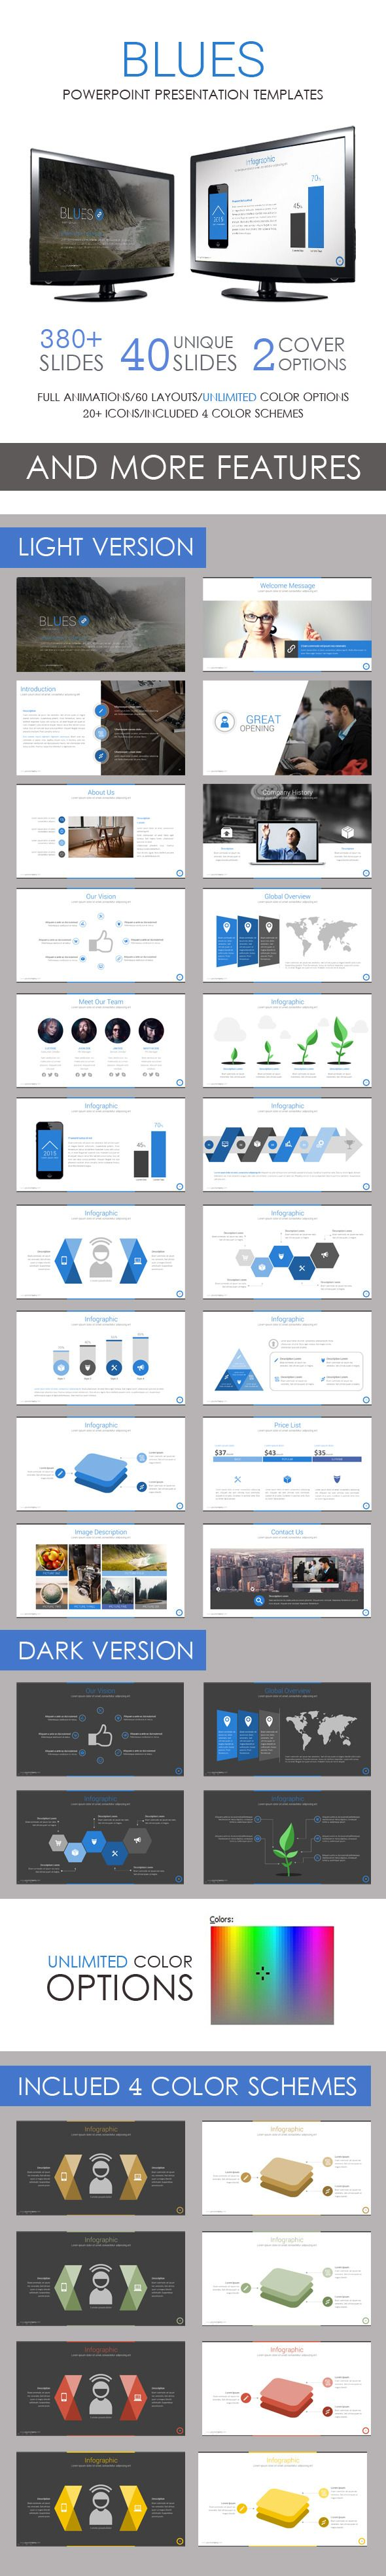 Blues PowerPoint Template #design Download…